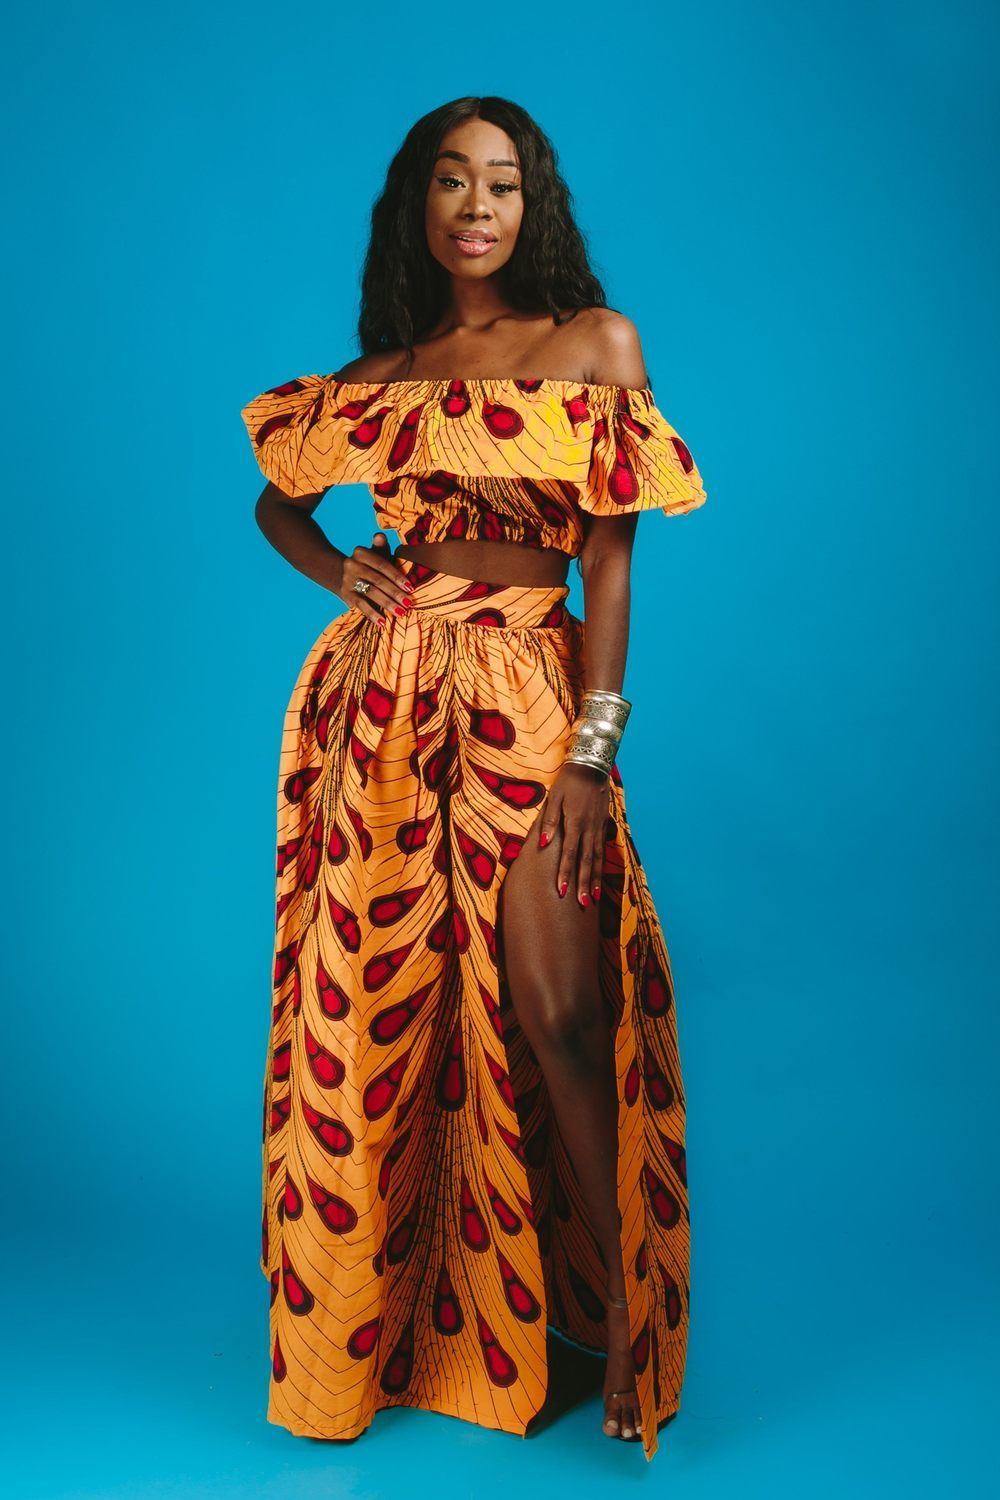 0eb89848a4 African print maxi skirt 2 side pockets Elastic at the back 100% cotton  Made with high quality African print wax fabric - Skirt measures  approximately 46 ...